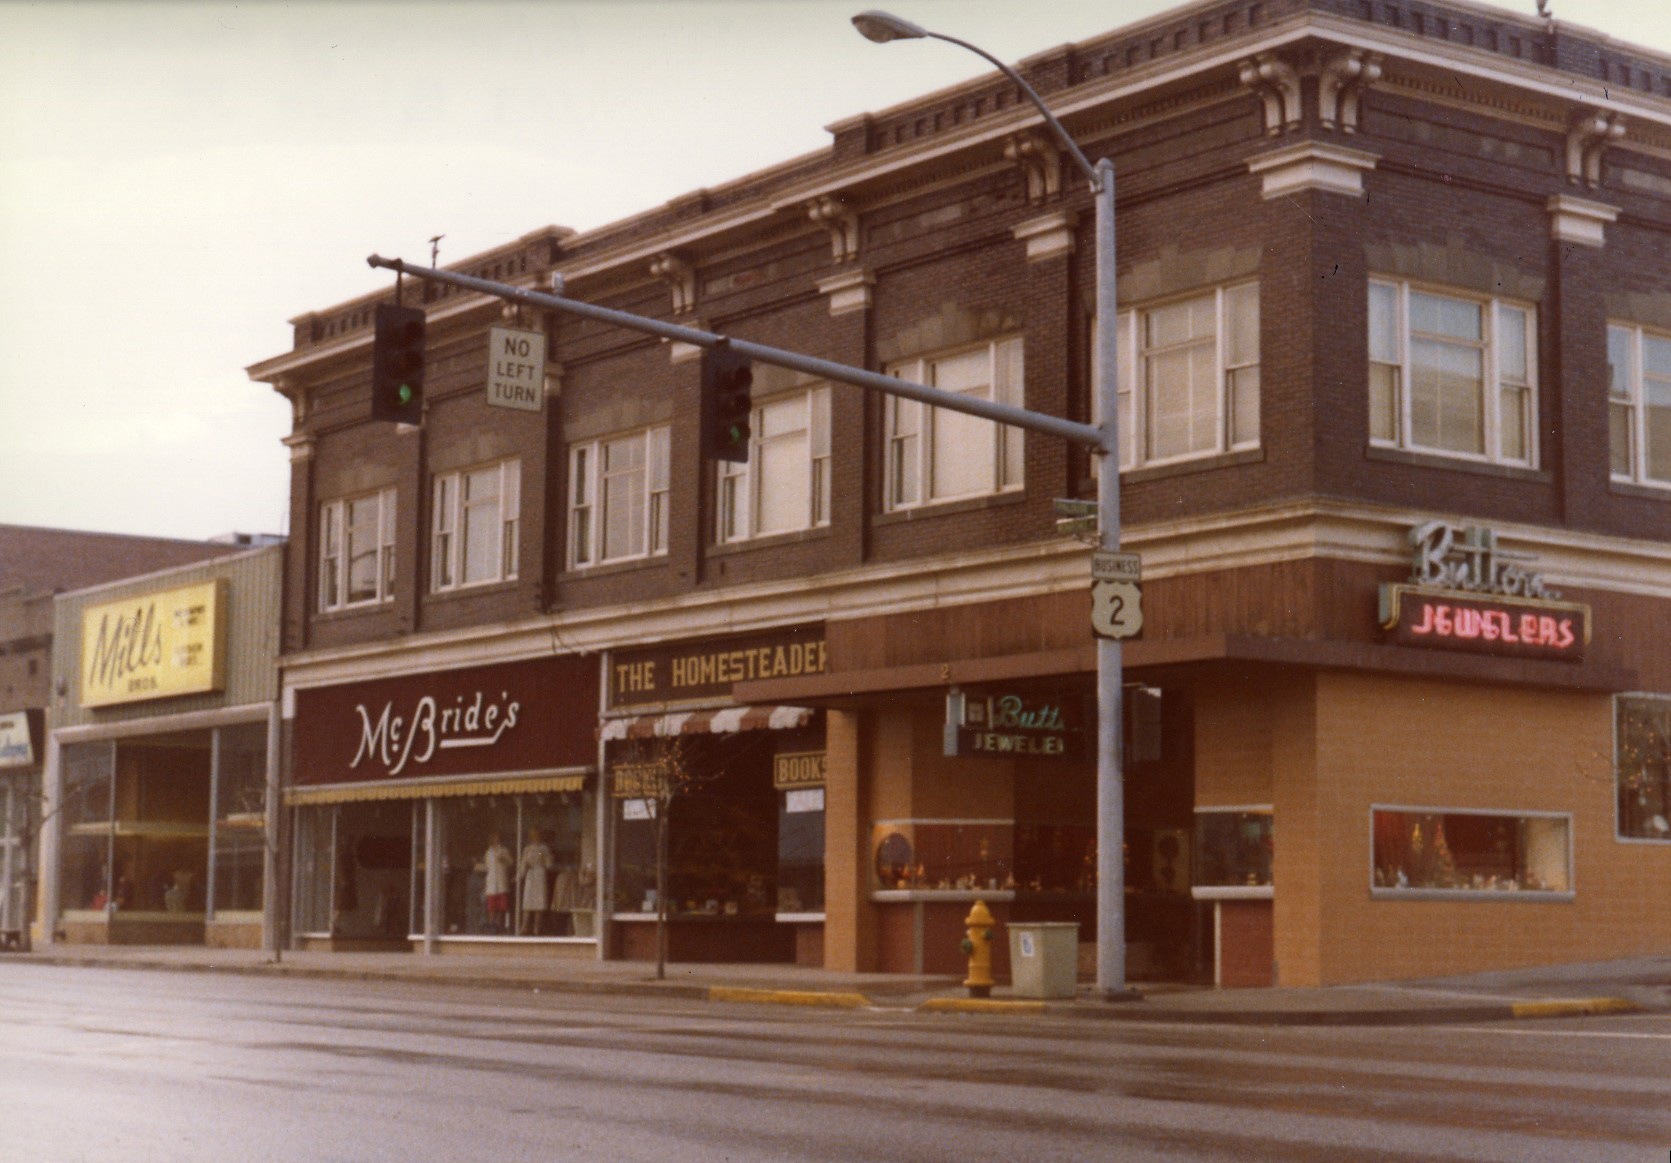 An image showing the facade from 1985.